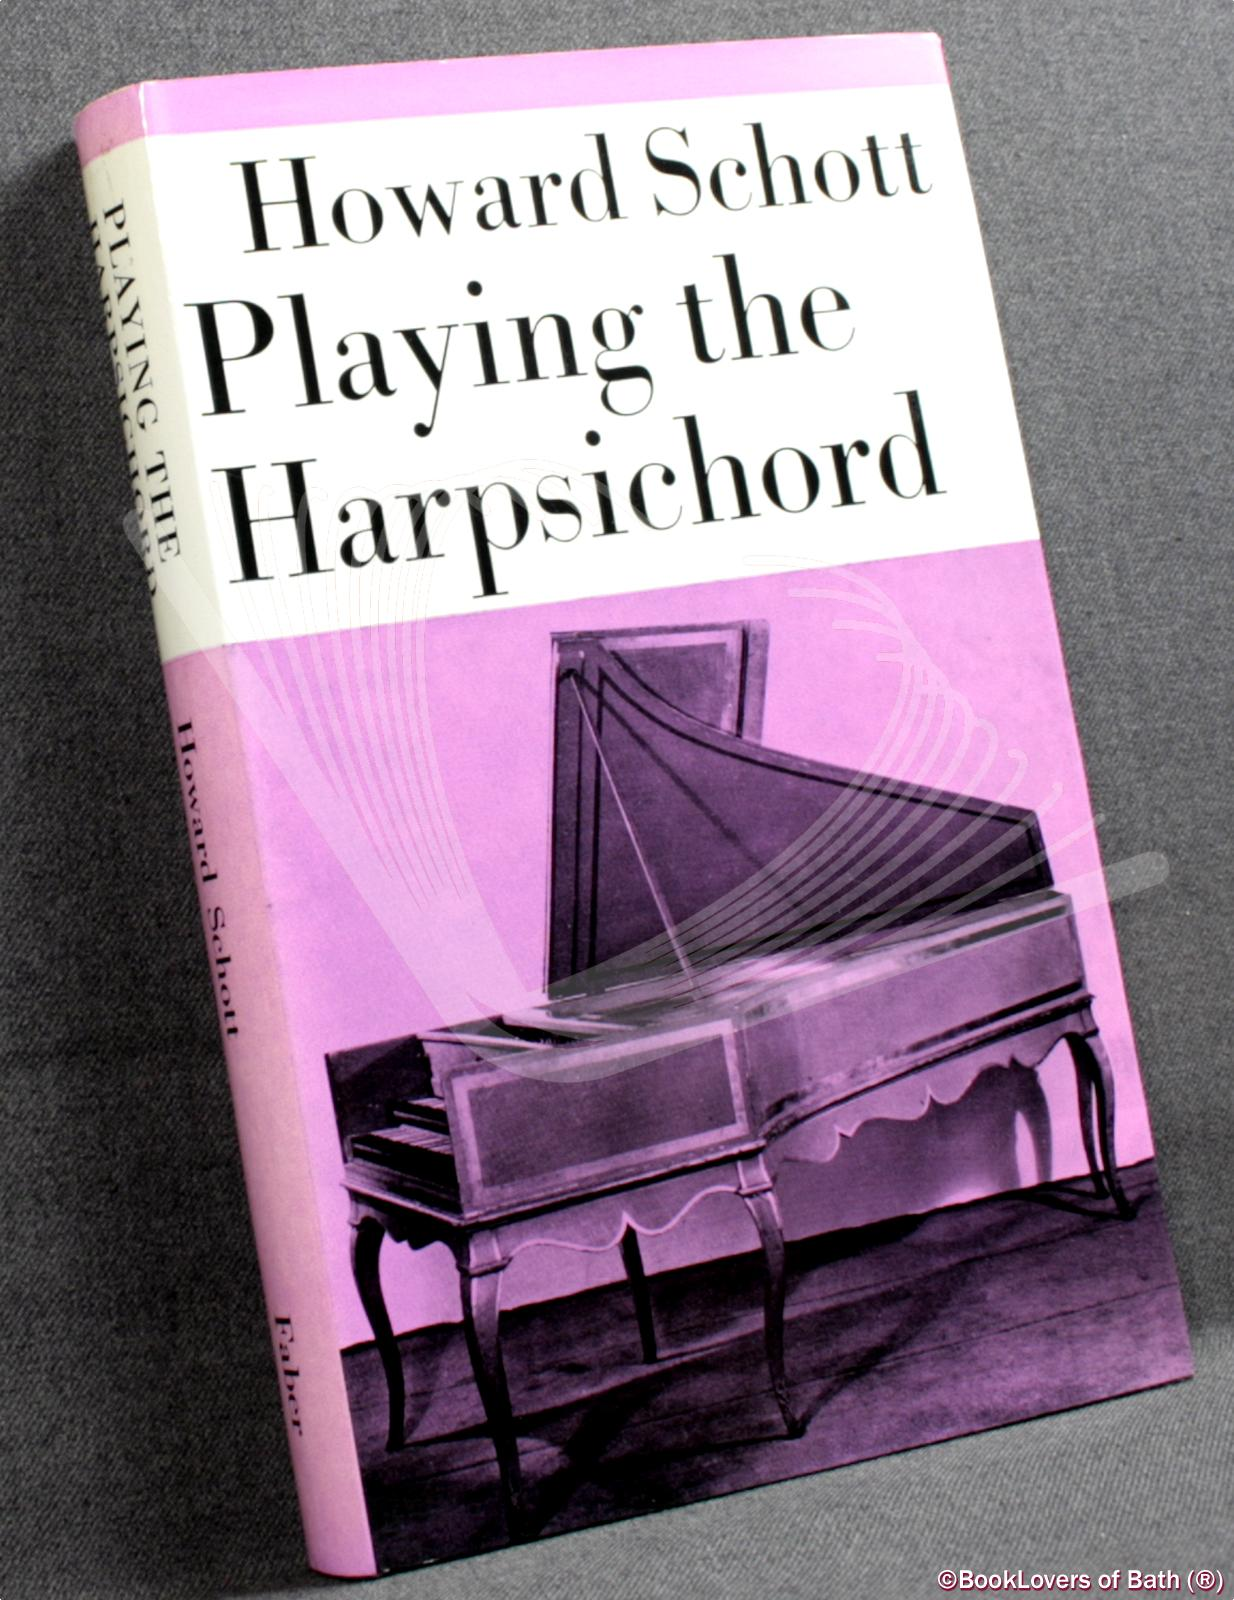 Playing the Harpsichord - Howard Schott